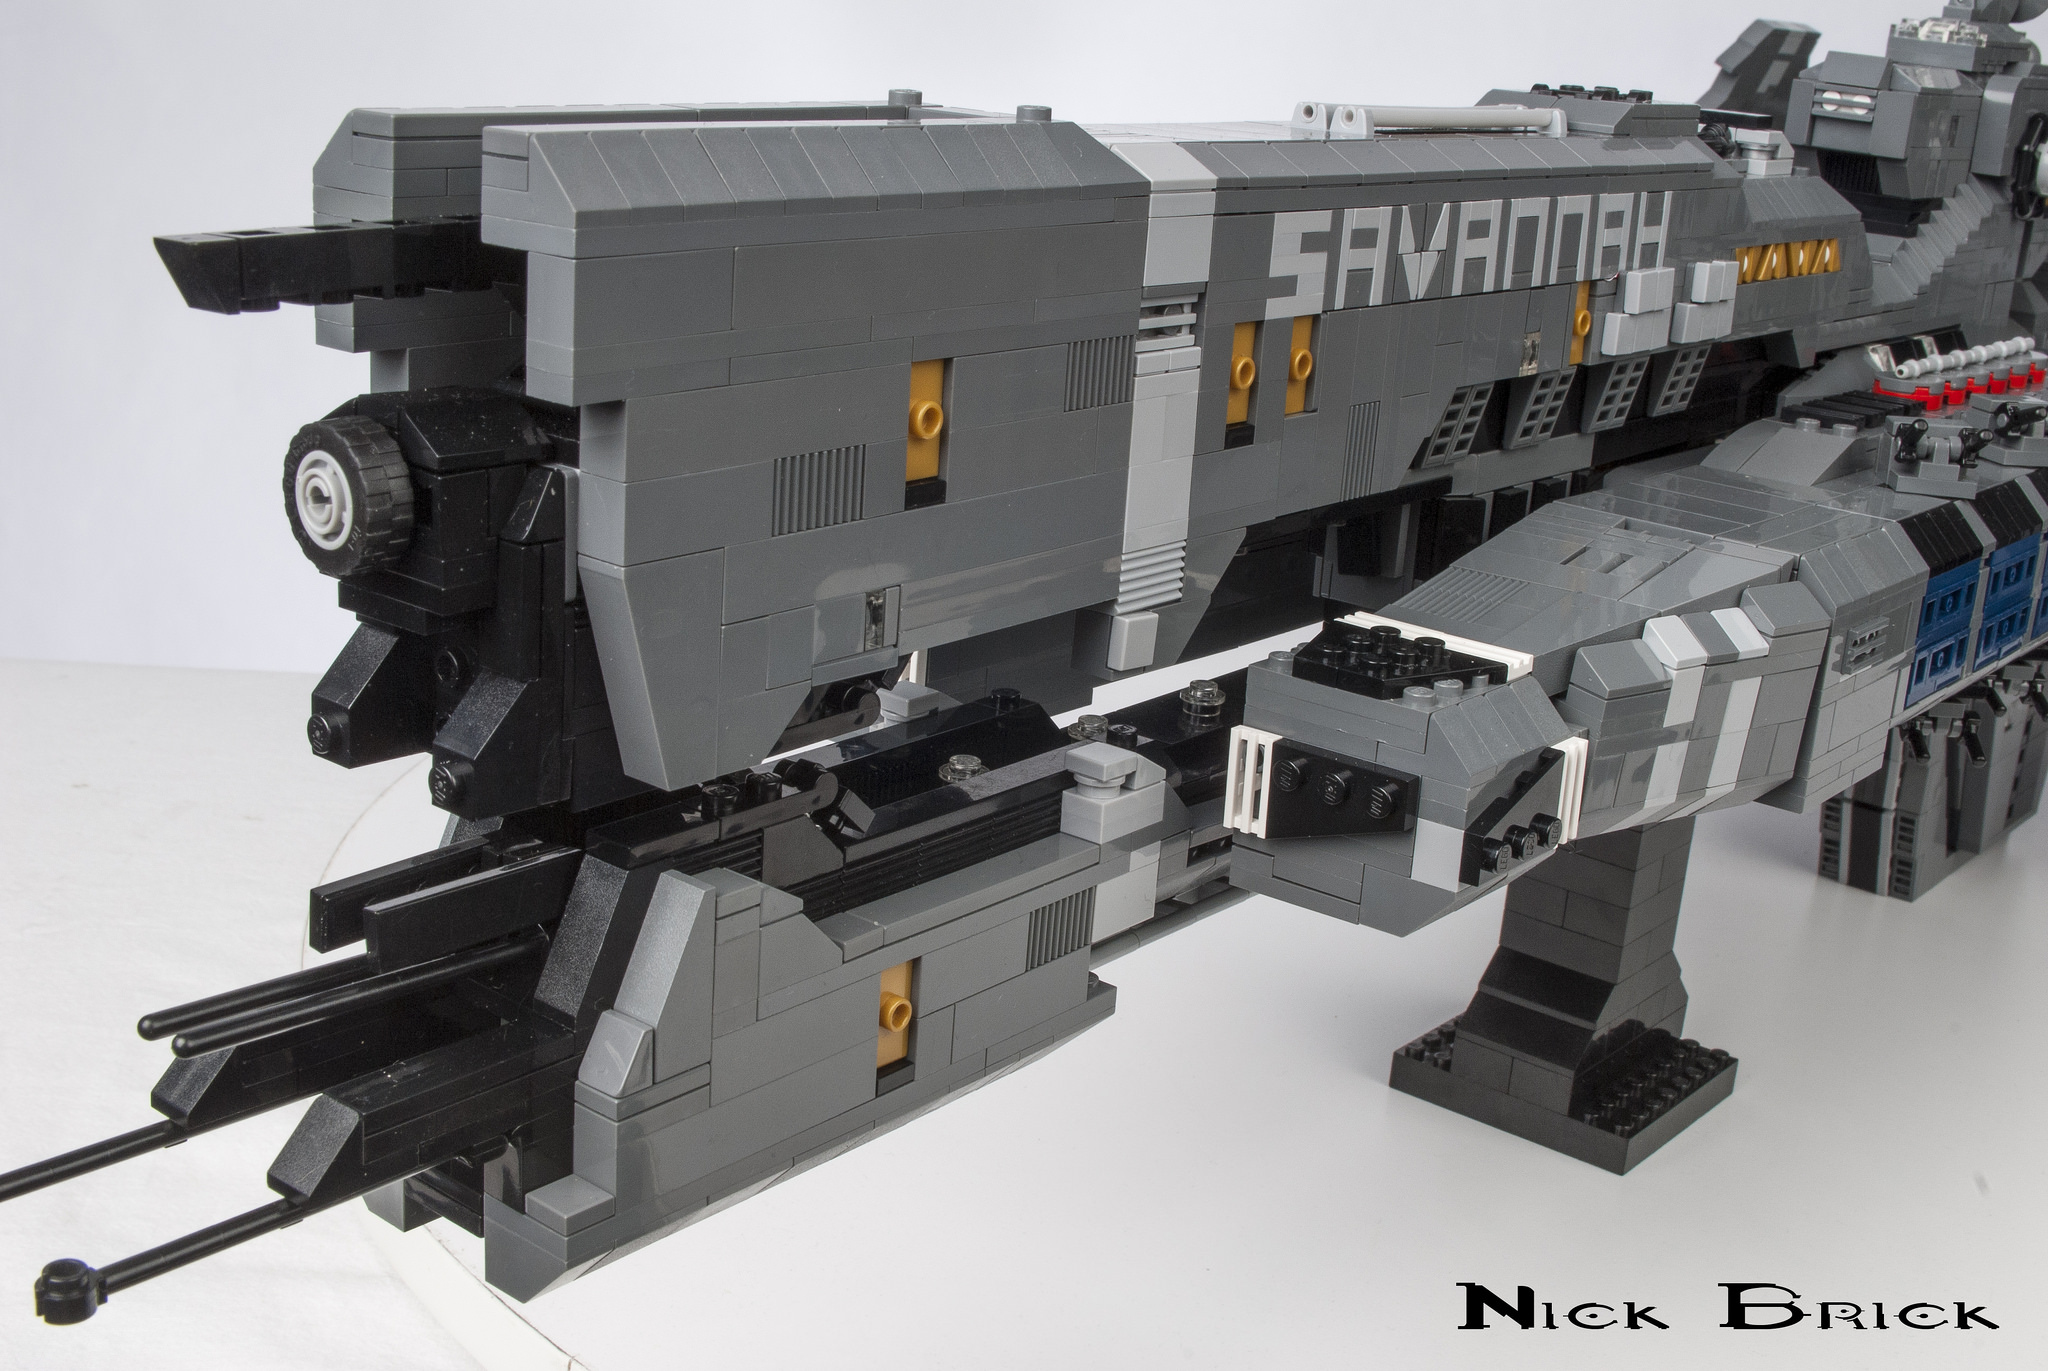 UNSC Savannah 7